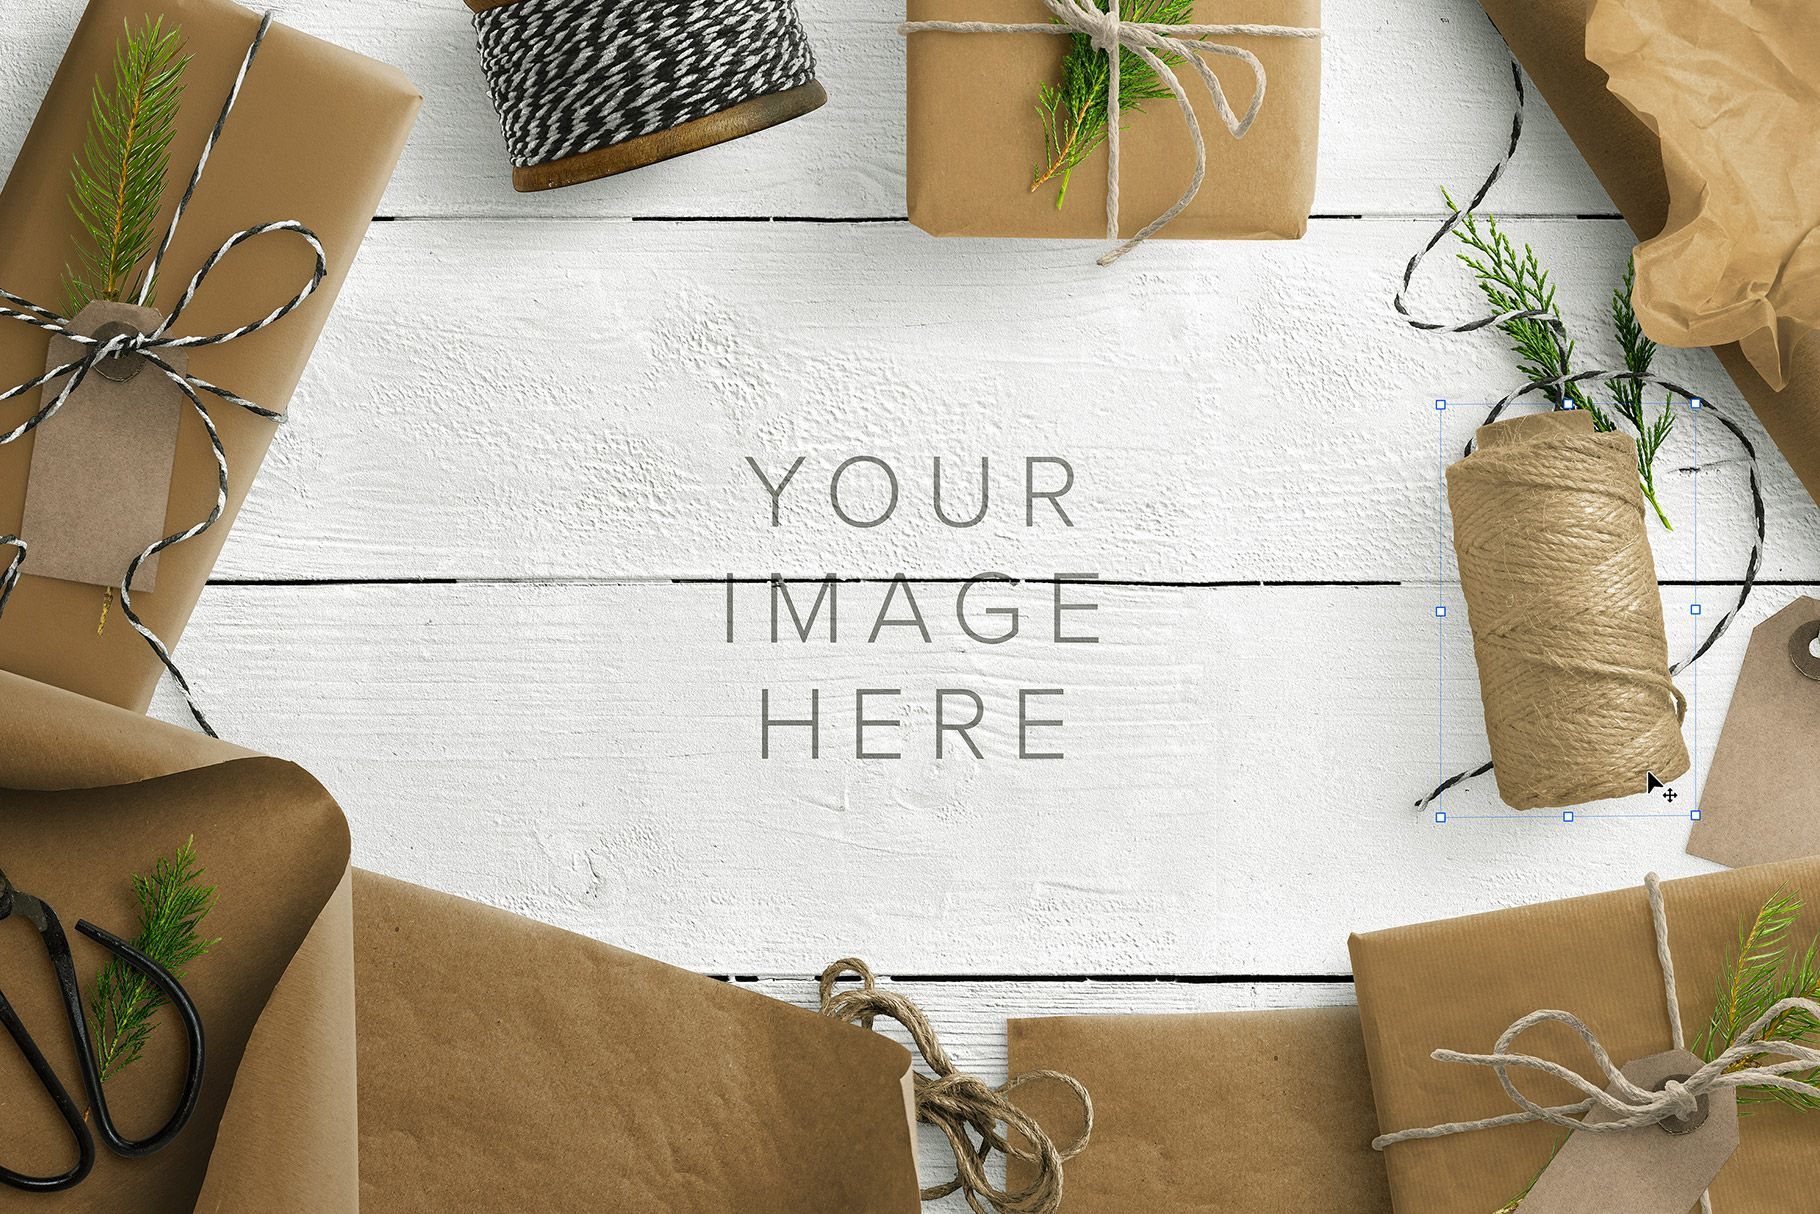 Gift Scene with Wrapped Parcels Twine and Natural Elements 3